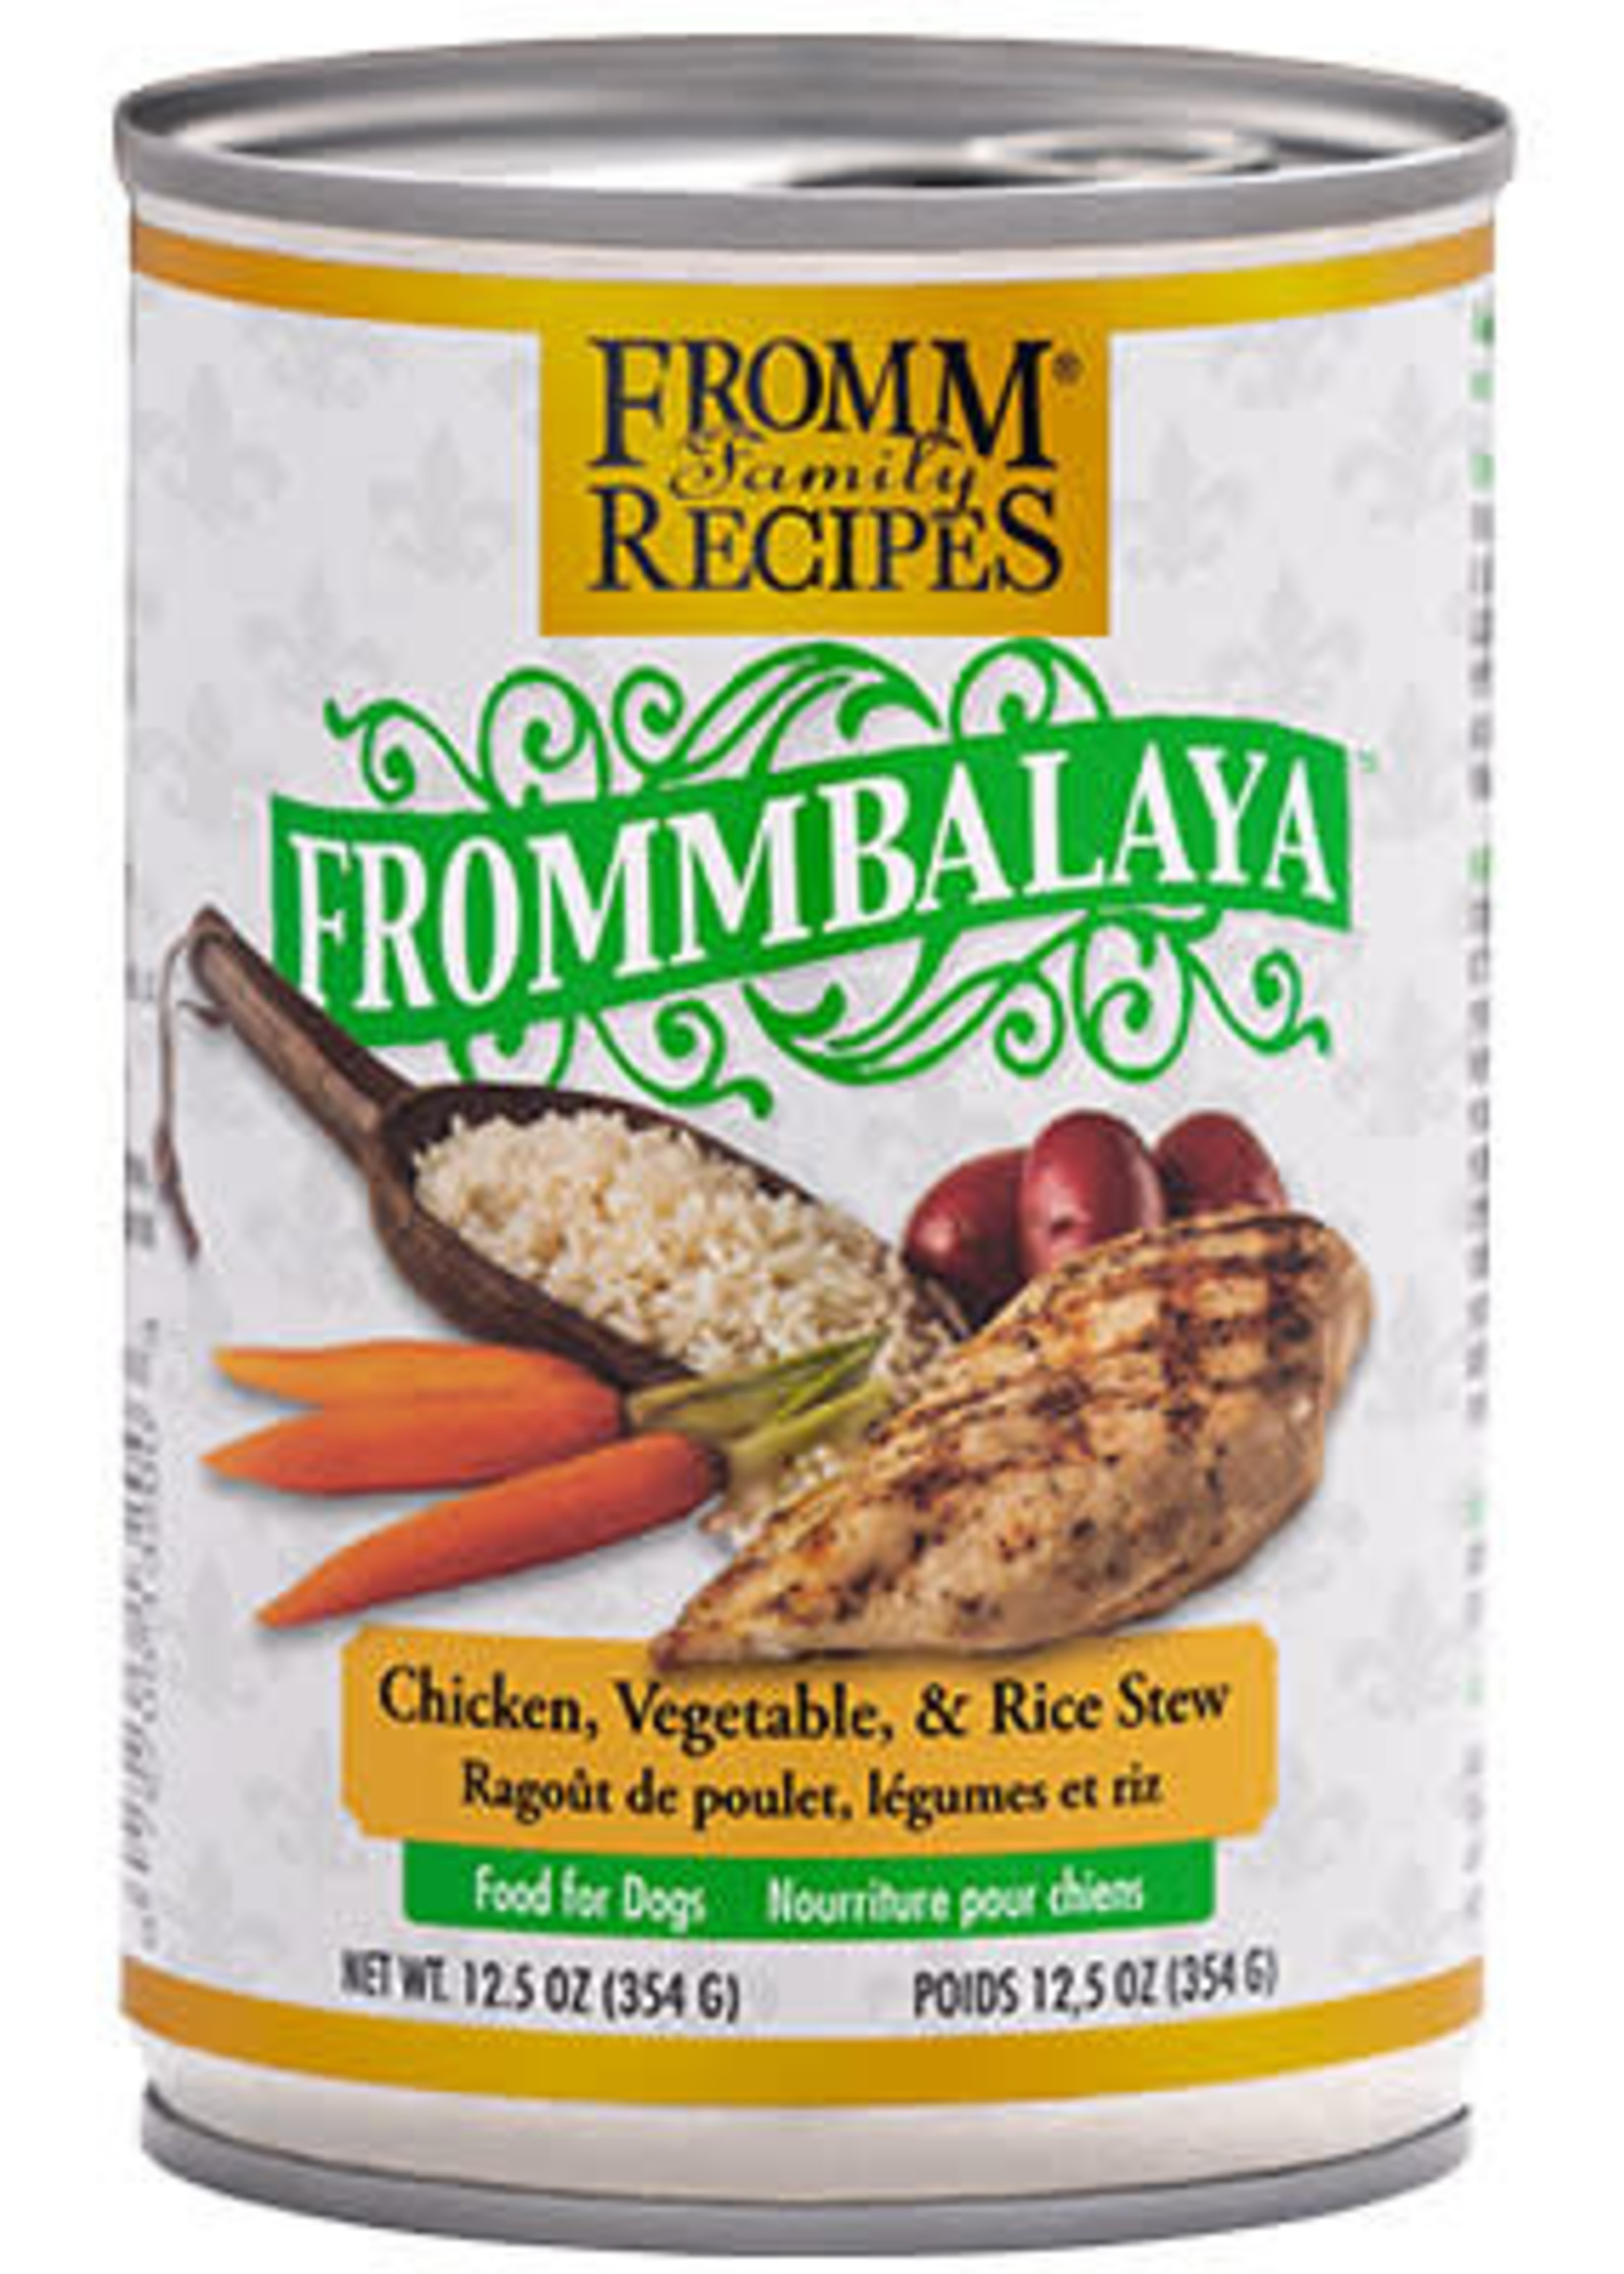 Fromm® FrommBALAYA Chicken, Vegetable, & Rice Stew 12.5oz